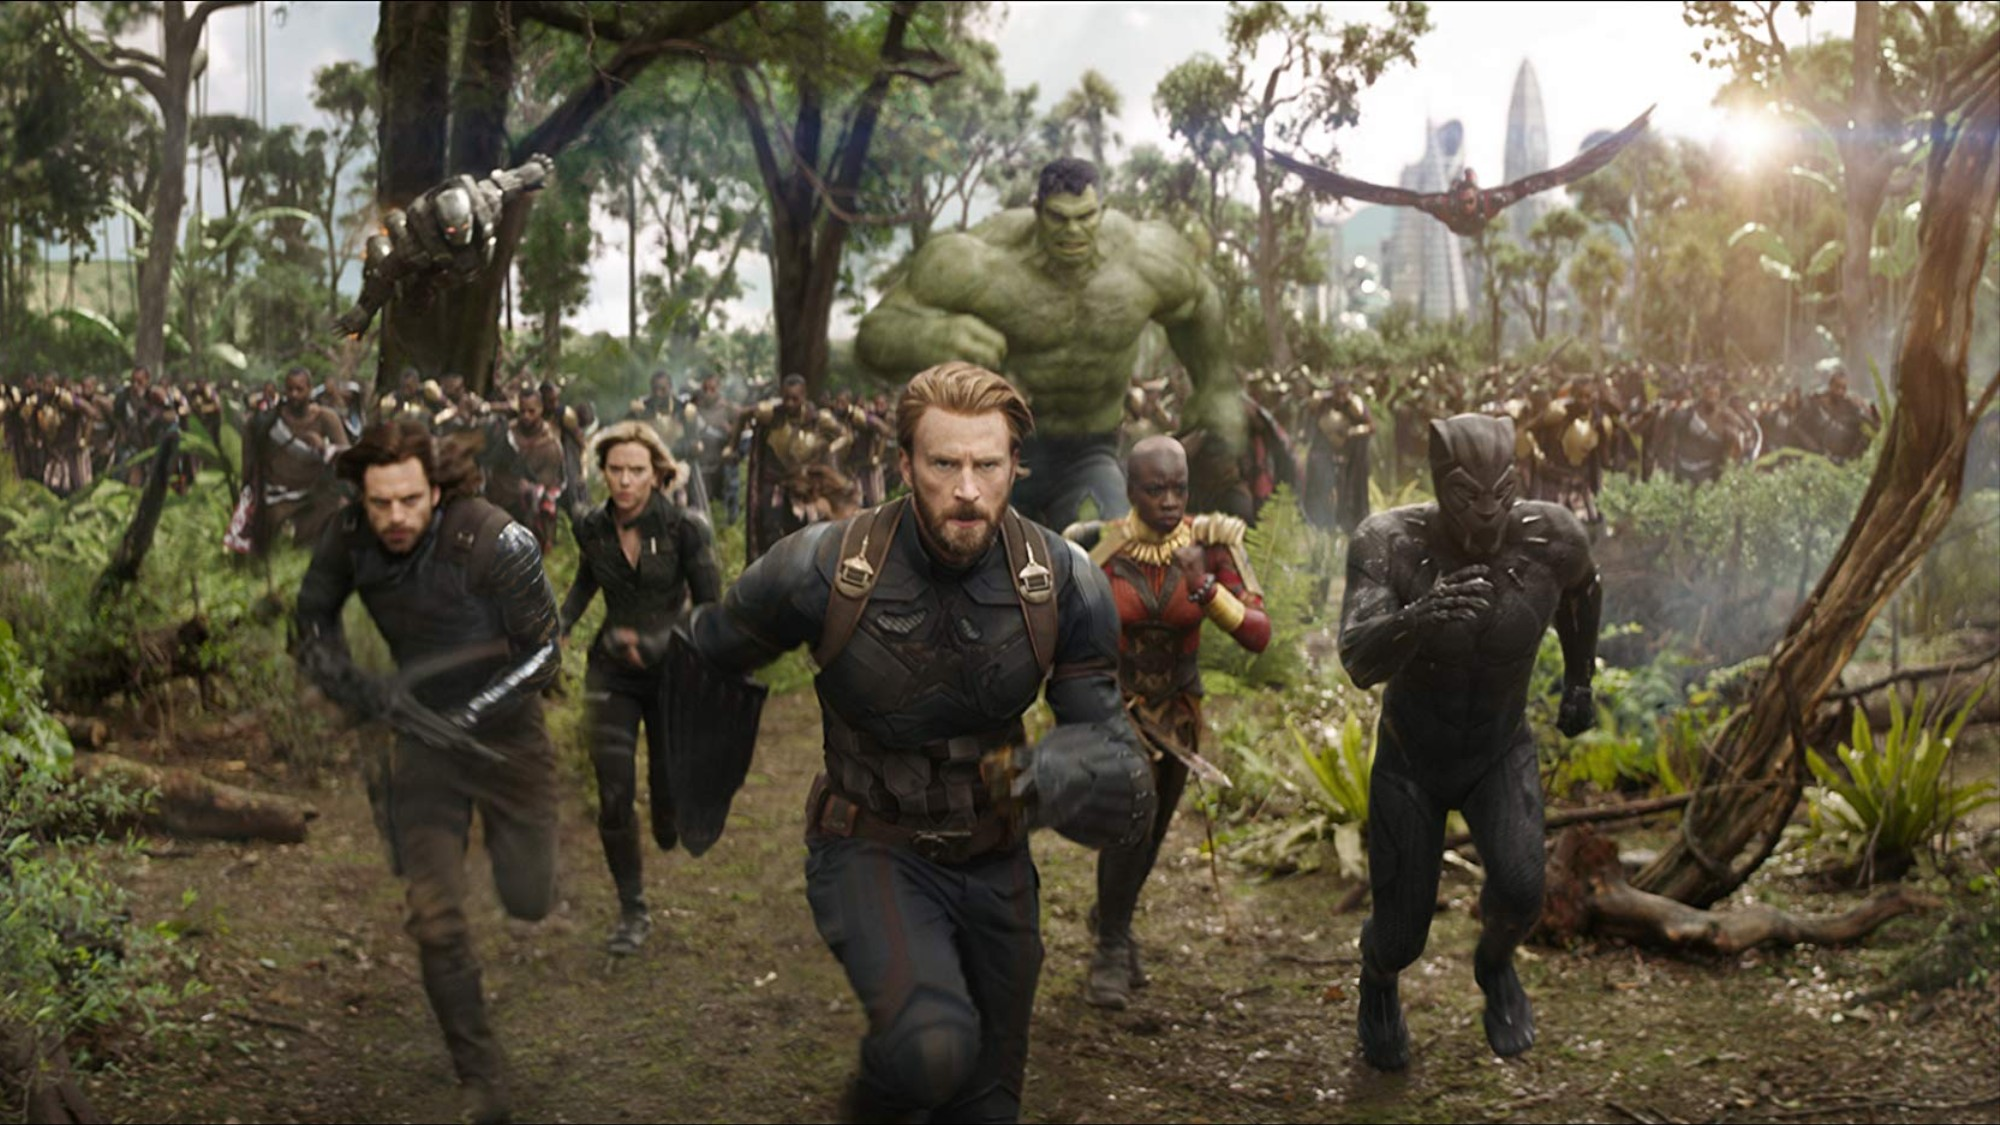 You Can Make $1,000 Binging All 20 MCU Movies, but It Will